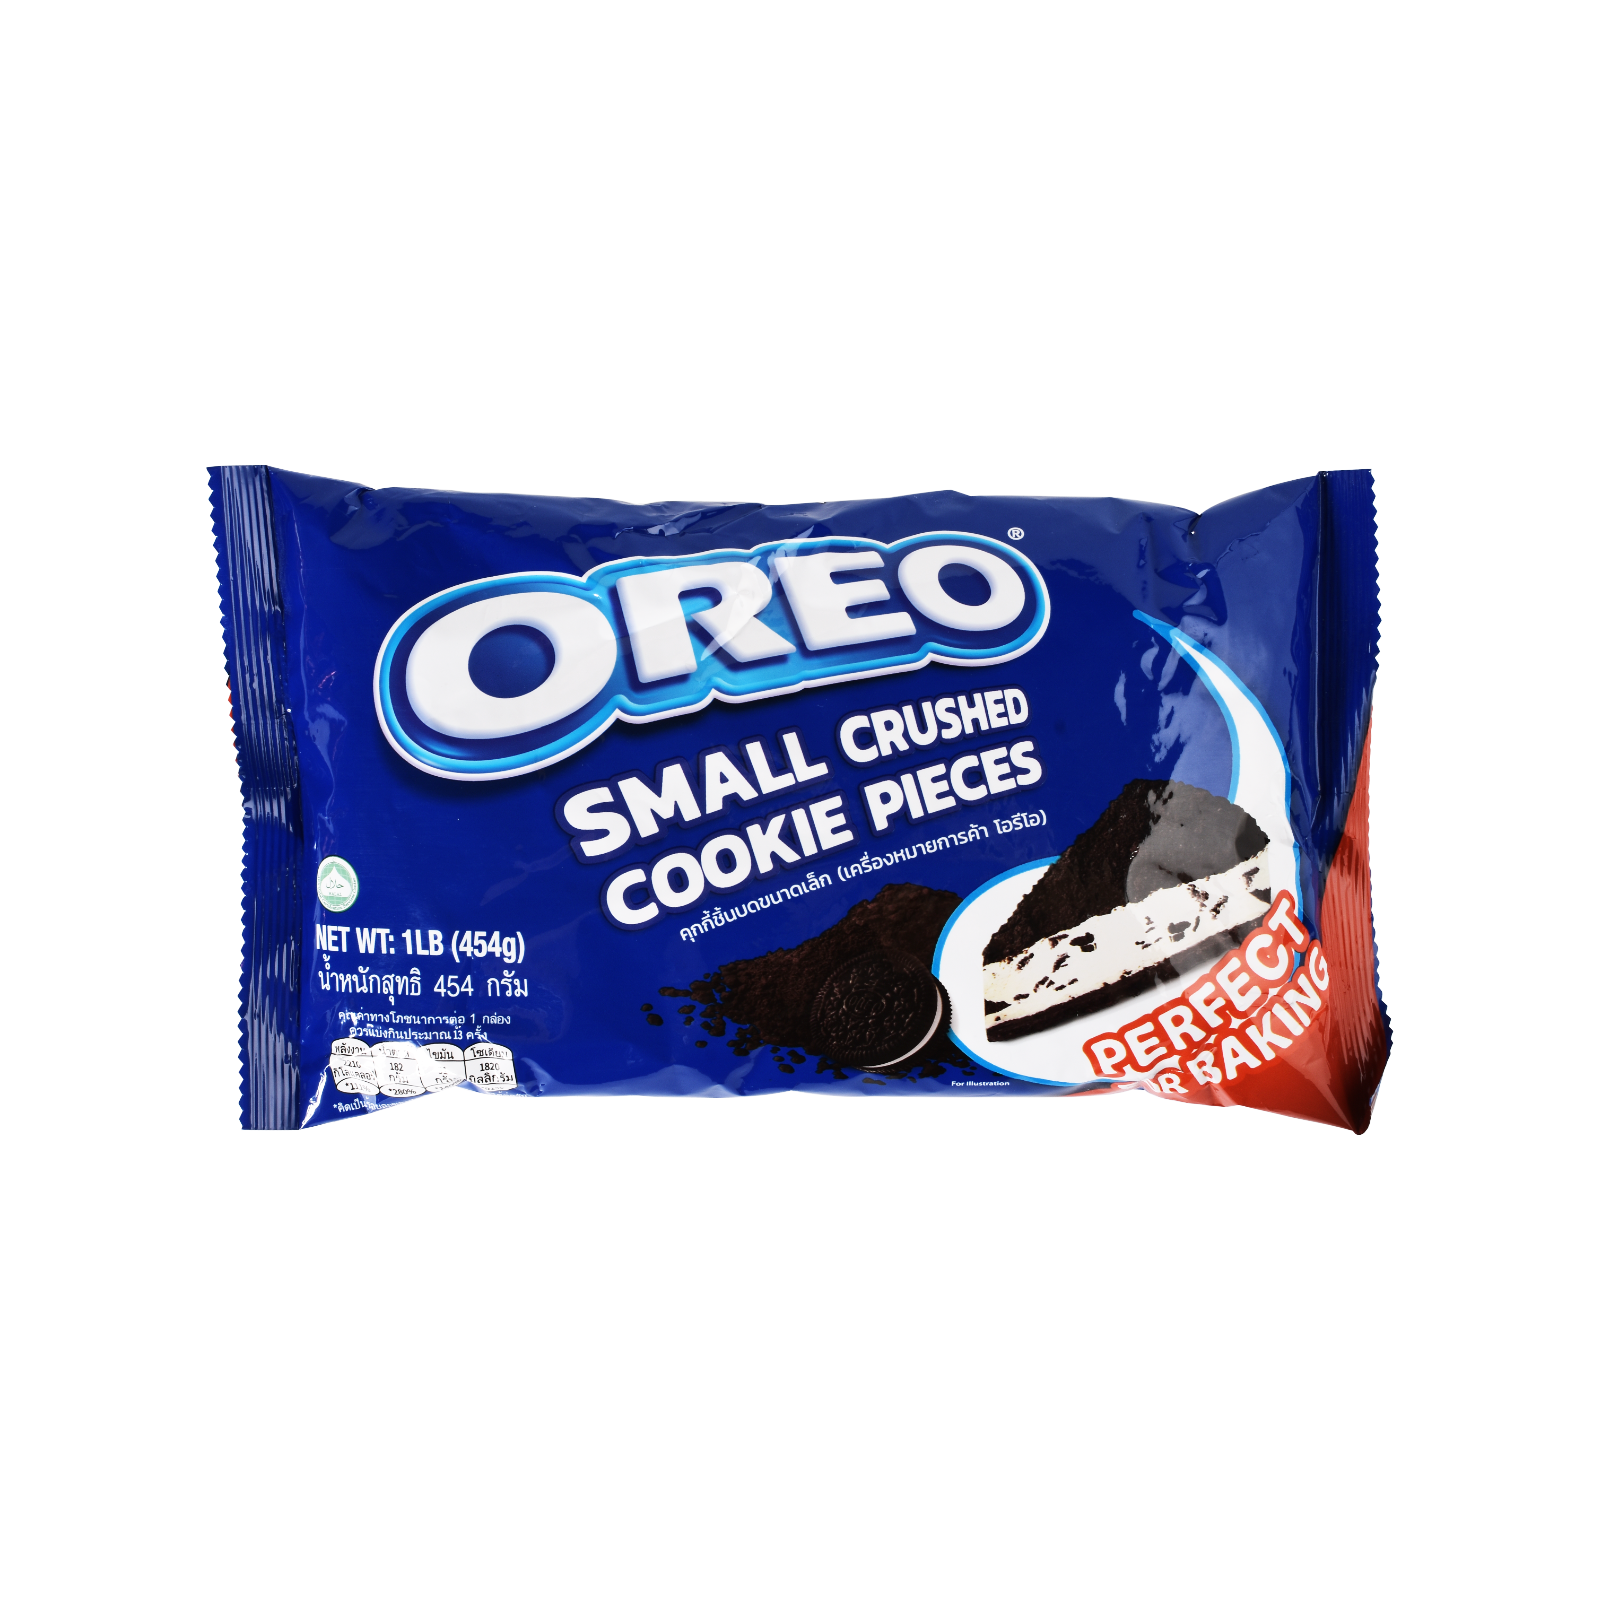 oreo small crushed cookie pieces.png